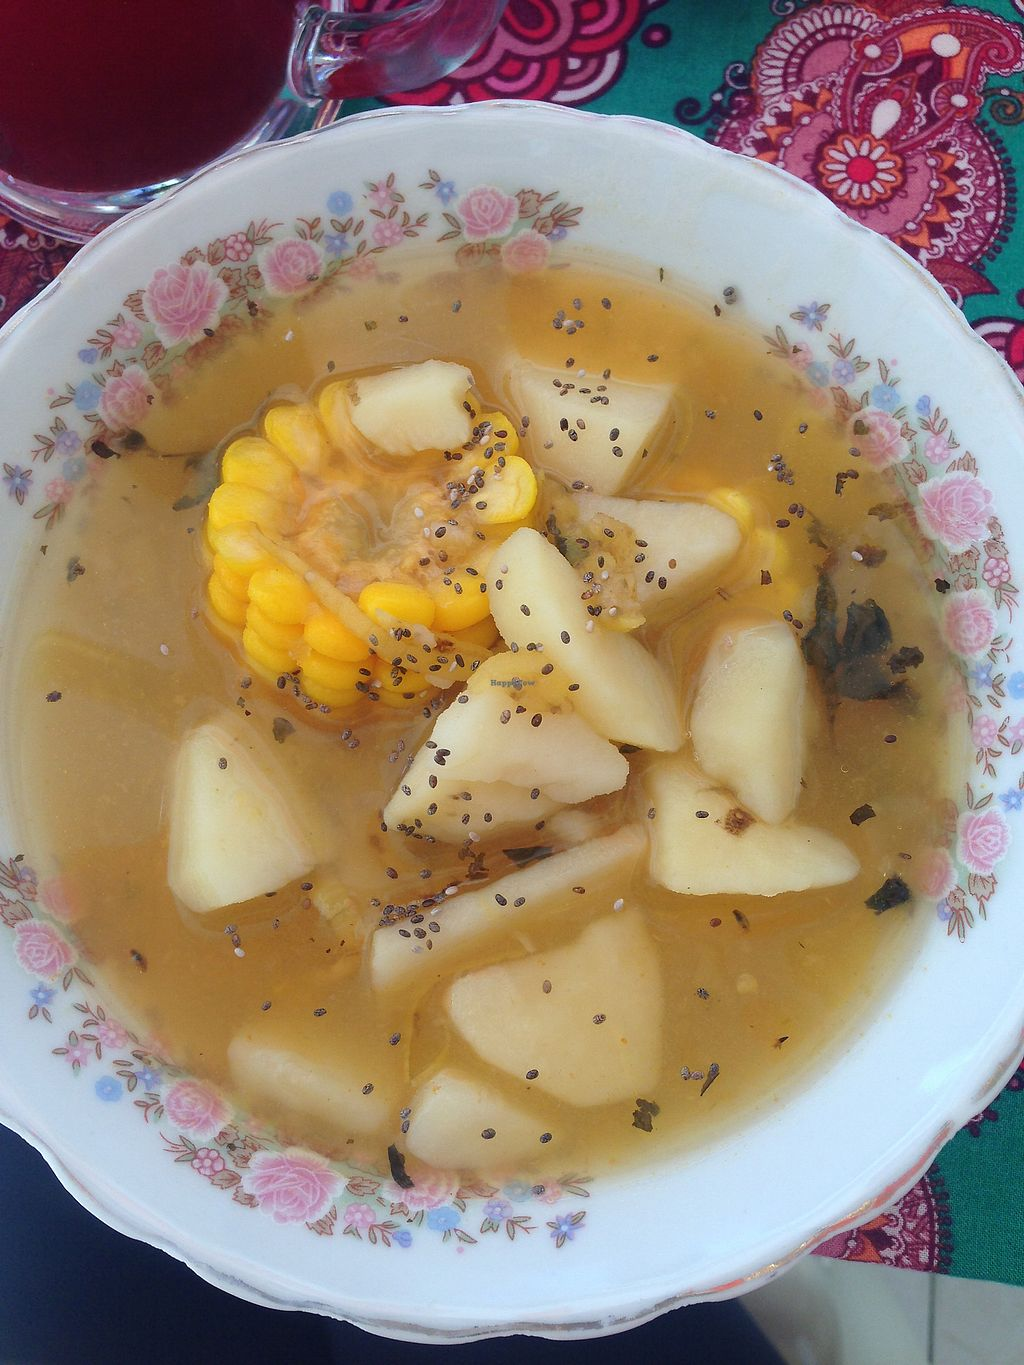 """Photo of Govinda's  by <a href=""""/members/profile/Sezbakes"""">Sezbakes</a> <br/>Potato and corn soup  <br/> October 10, 2017  - <a href='/contact/abuse/image/88768/314086'>Report</a>"""